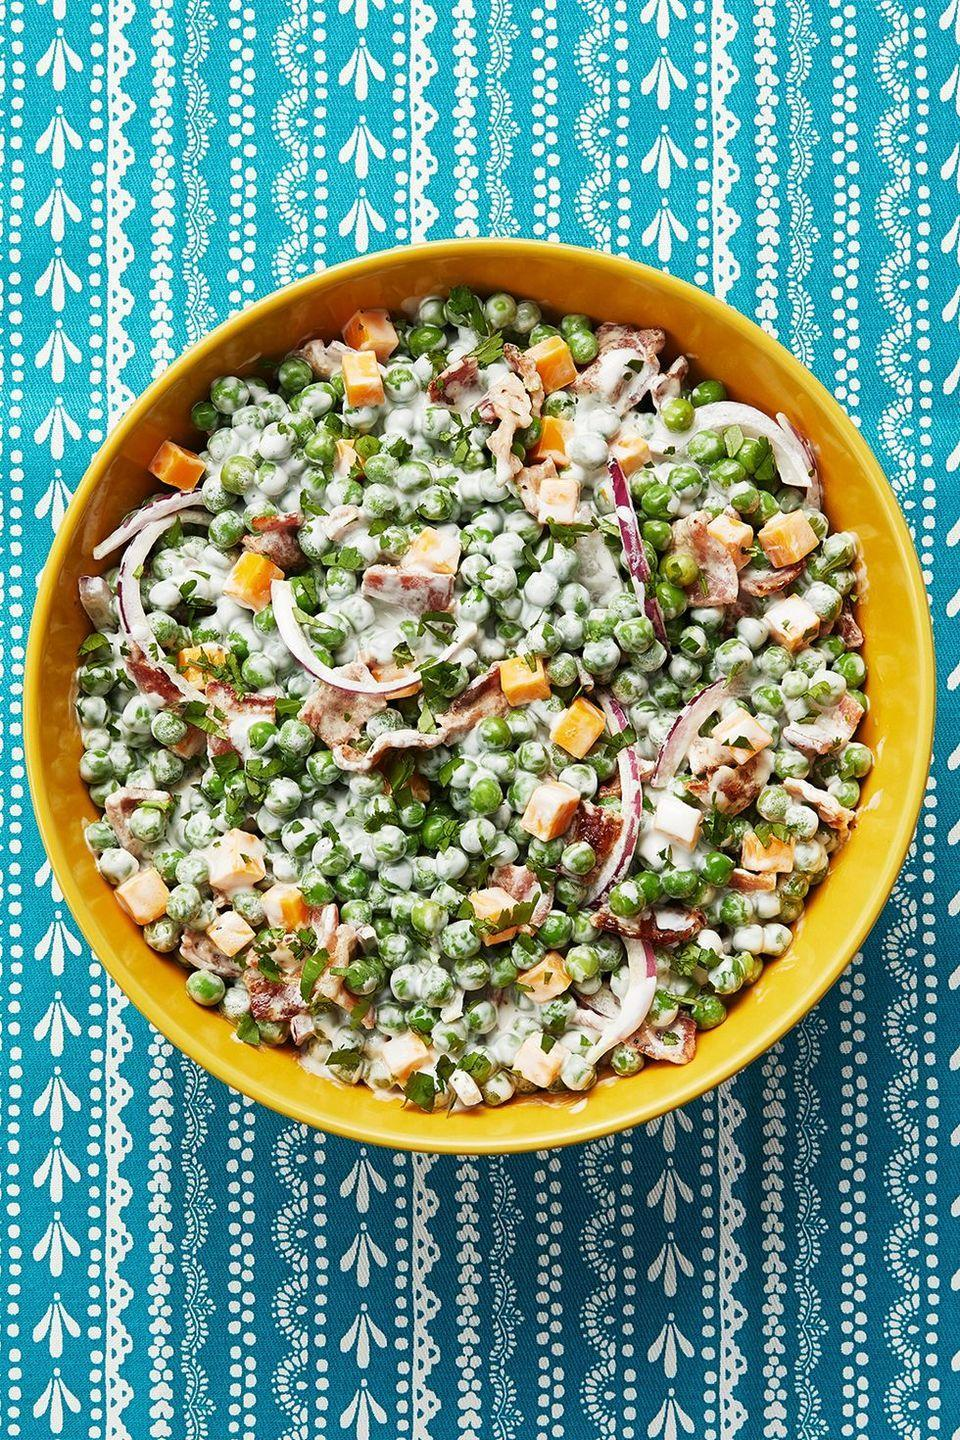 """<p>This recipe is a favorite from Ree's childhood! It's a hearty salad, made with peas, bacon, and cheddar cheese.</p><p><strong><a href=""""https://www.thepioneerwoman.com/food-cooking/recipes/a12025/pea-salad/"""" rel=""""nofollow noopener"""" target=""""_blank"""" data-ylk=""""slk:Get the recipe."""" class=""""link rapid-noclick-resp"""">Get the recipe.</a></strong></p><p><strong><a class=""""link rapid-noclick-resp"""" href=""""https://go.redirectingat.com?id=74968X1596630&url=https%3A%2F%2Fwww.walmart.com%2Fsearch%2F%3Fquery%3Dpioneer%2Bwoman%2Bserving%2Bbowls&sref=https%3A%2F%2Fwww.thepioneerwoman.com%2Ffood-cooking%2Fmeals-menus%2Fg35585877%2Feaster-recipes%2F"""" rel=""""nofollow noopener"""" target=""""_blank"""" data-ylk=""""slk:SHOP SERVING BOWLS"""">SHOP SERVING BOWLS</a></strong></p>"""